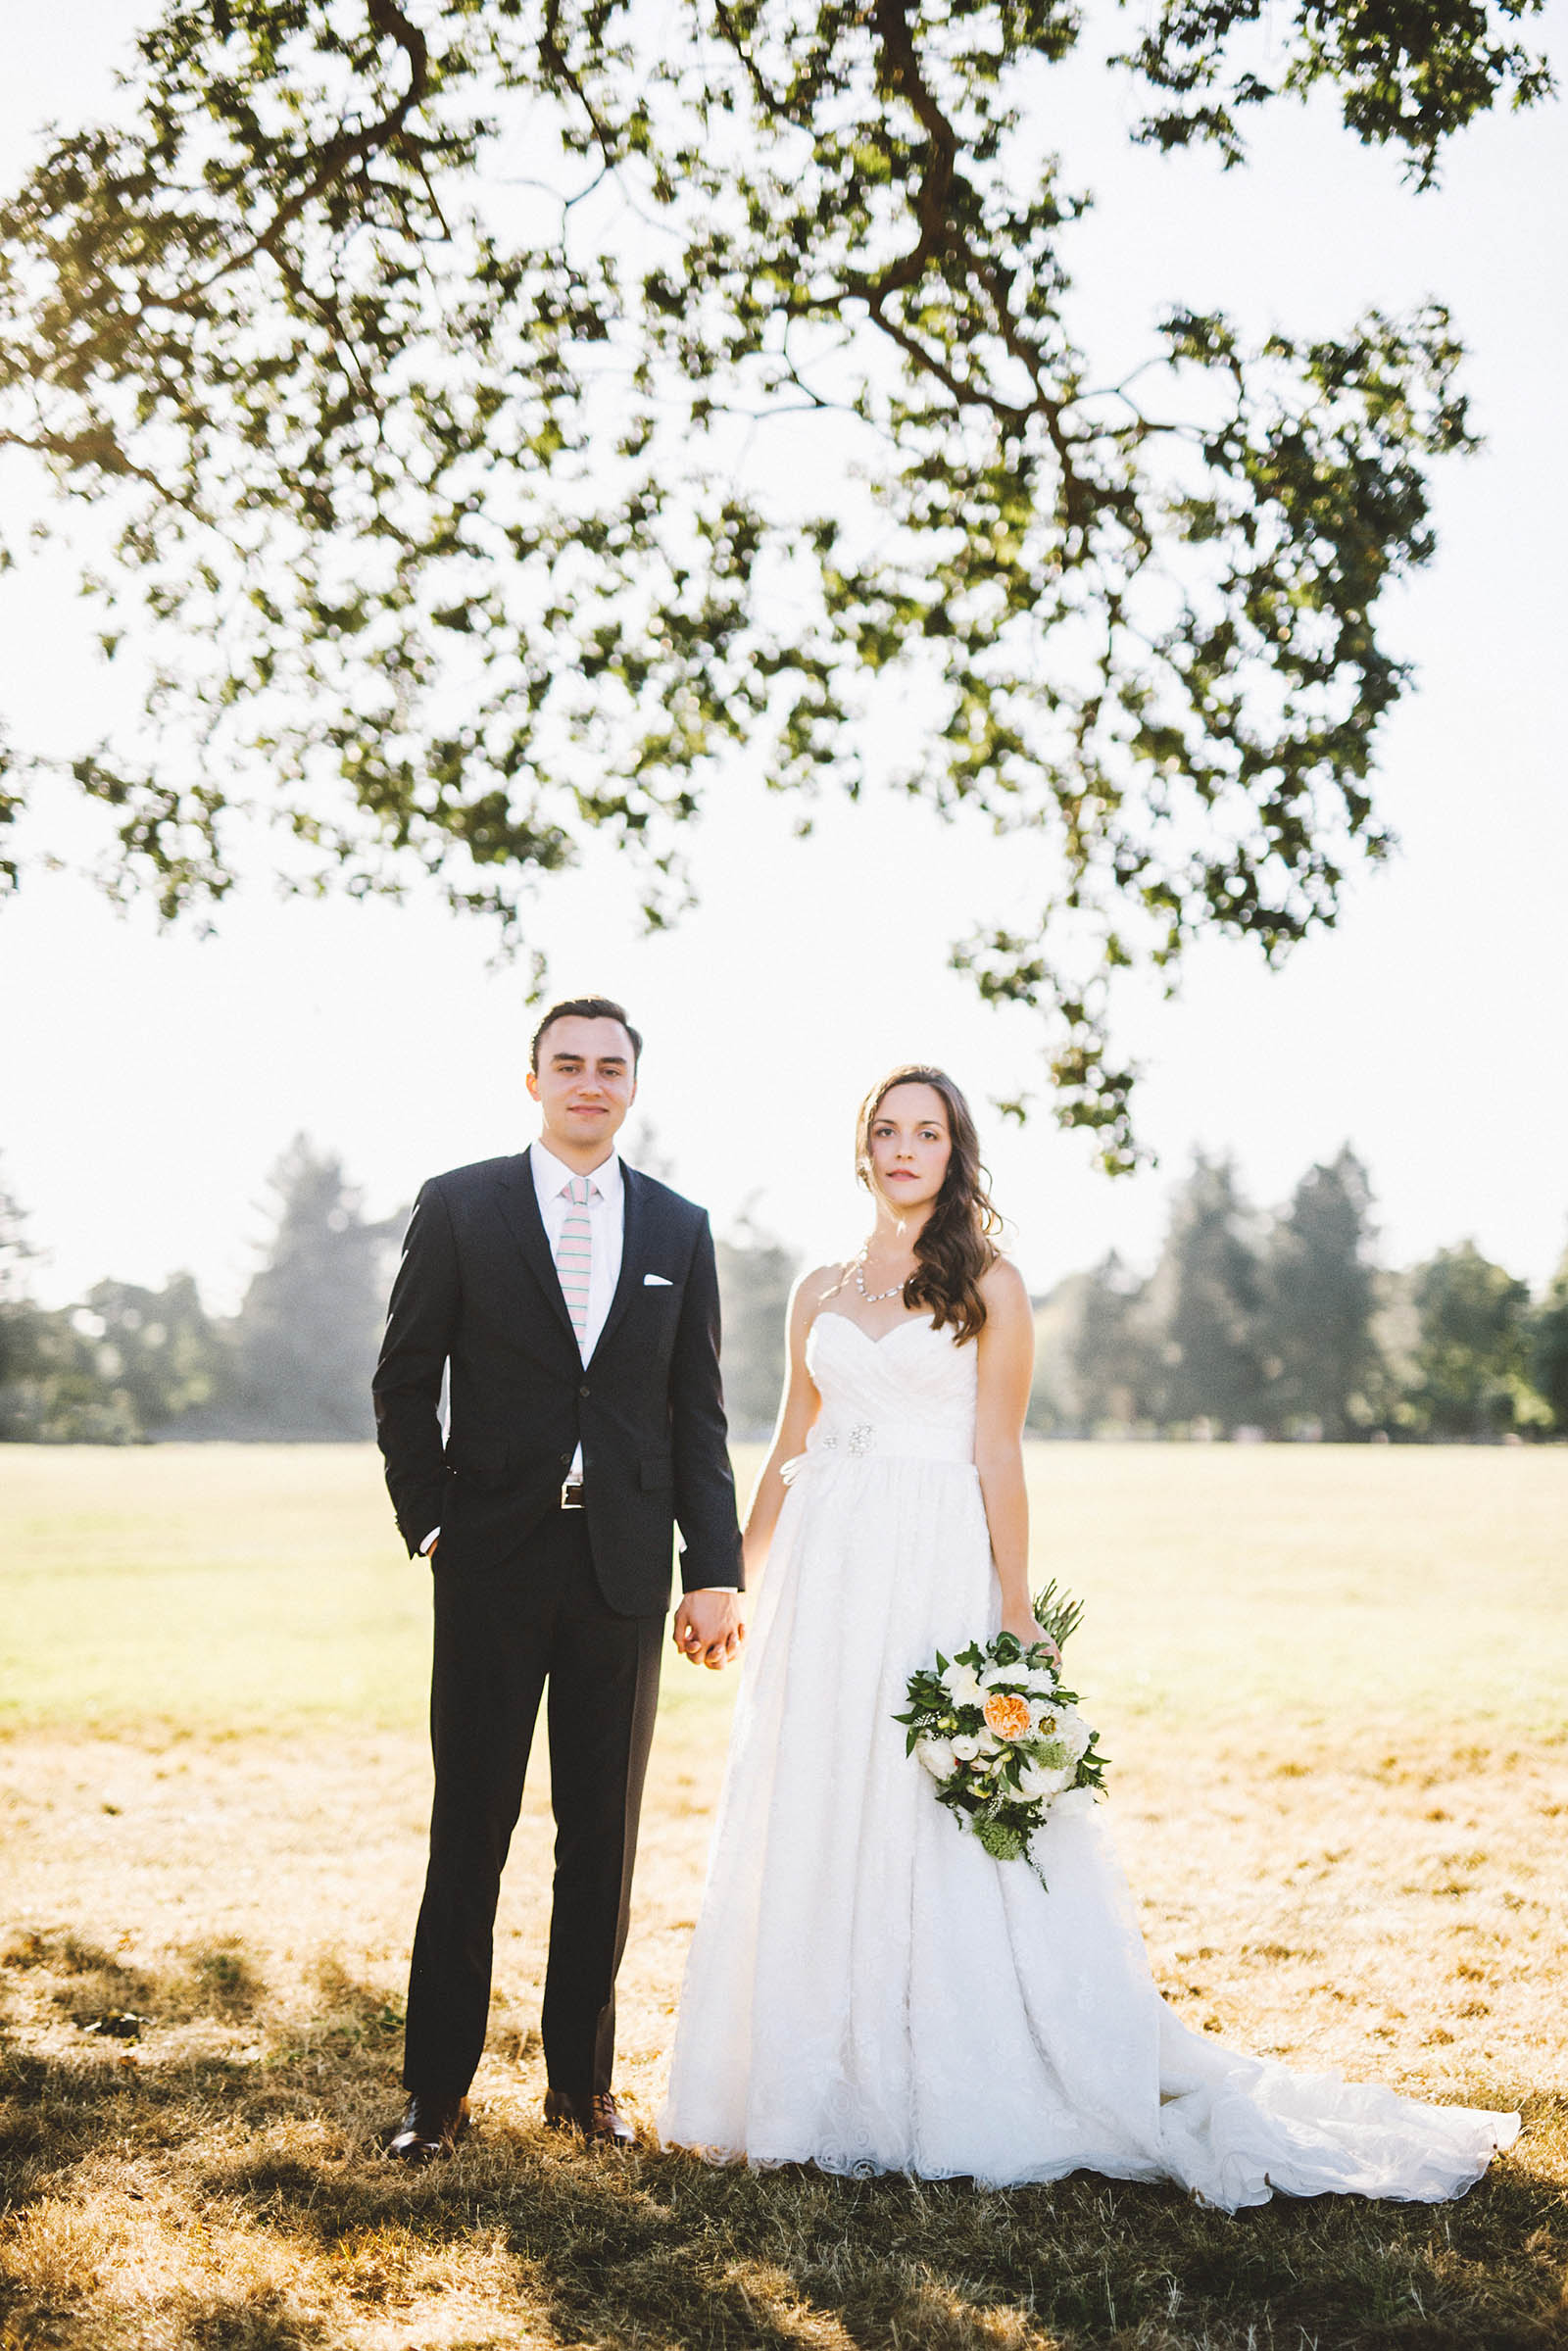 Bride and Groom standing under a tree | Fort Vancouver Wedding in Washington